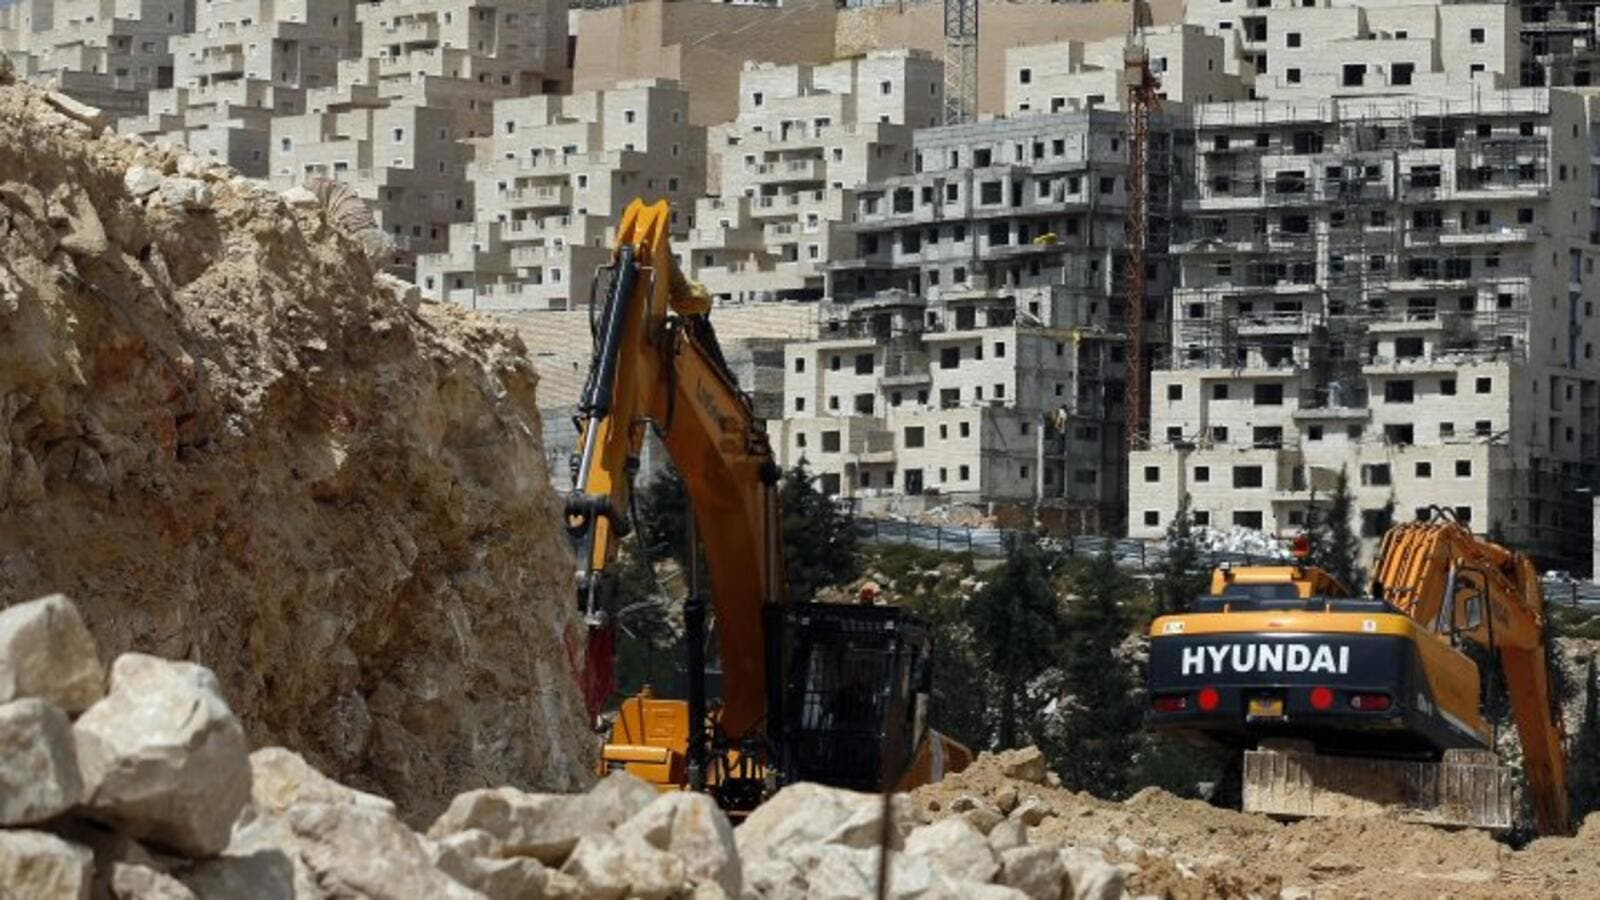 Israeli construction cranes and excavators at a building site in the Israeli settlement of Neve Yaakov, in the northern area of east Jerusalem on March 29, 2016. (AFP/Ahmad Gharabli)